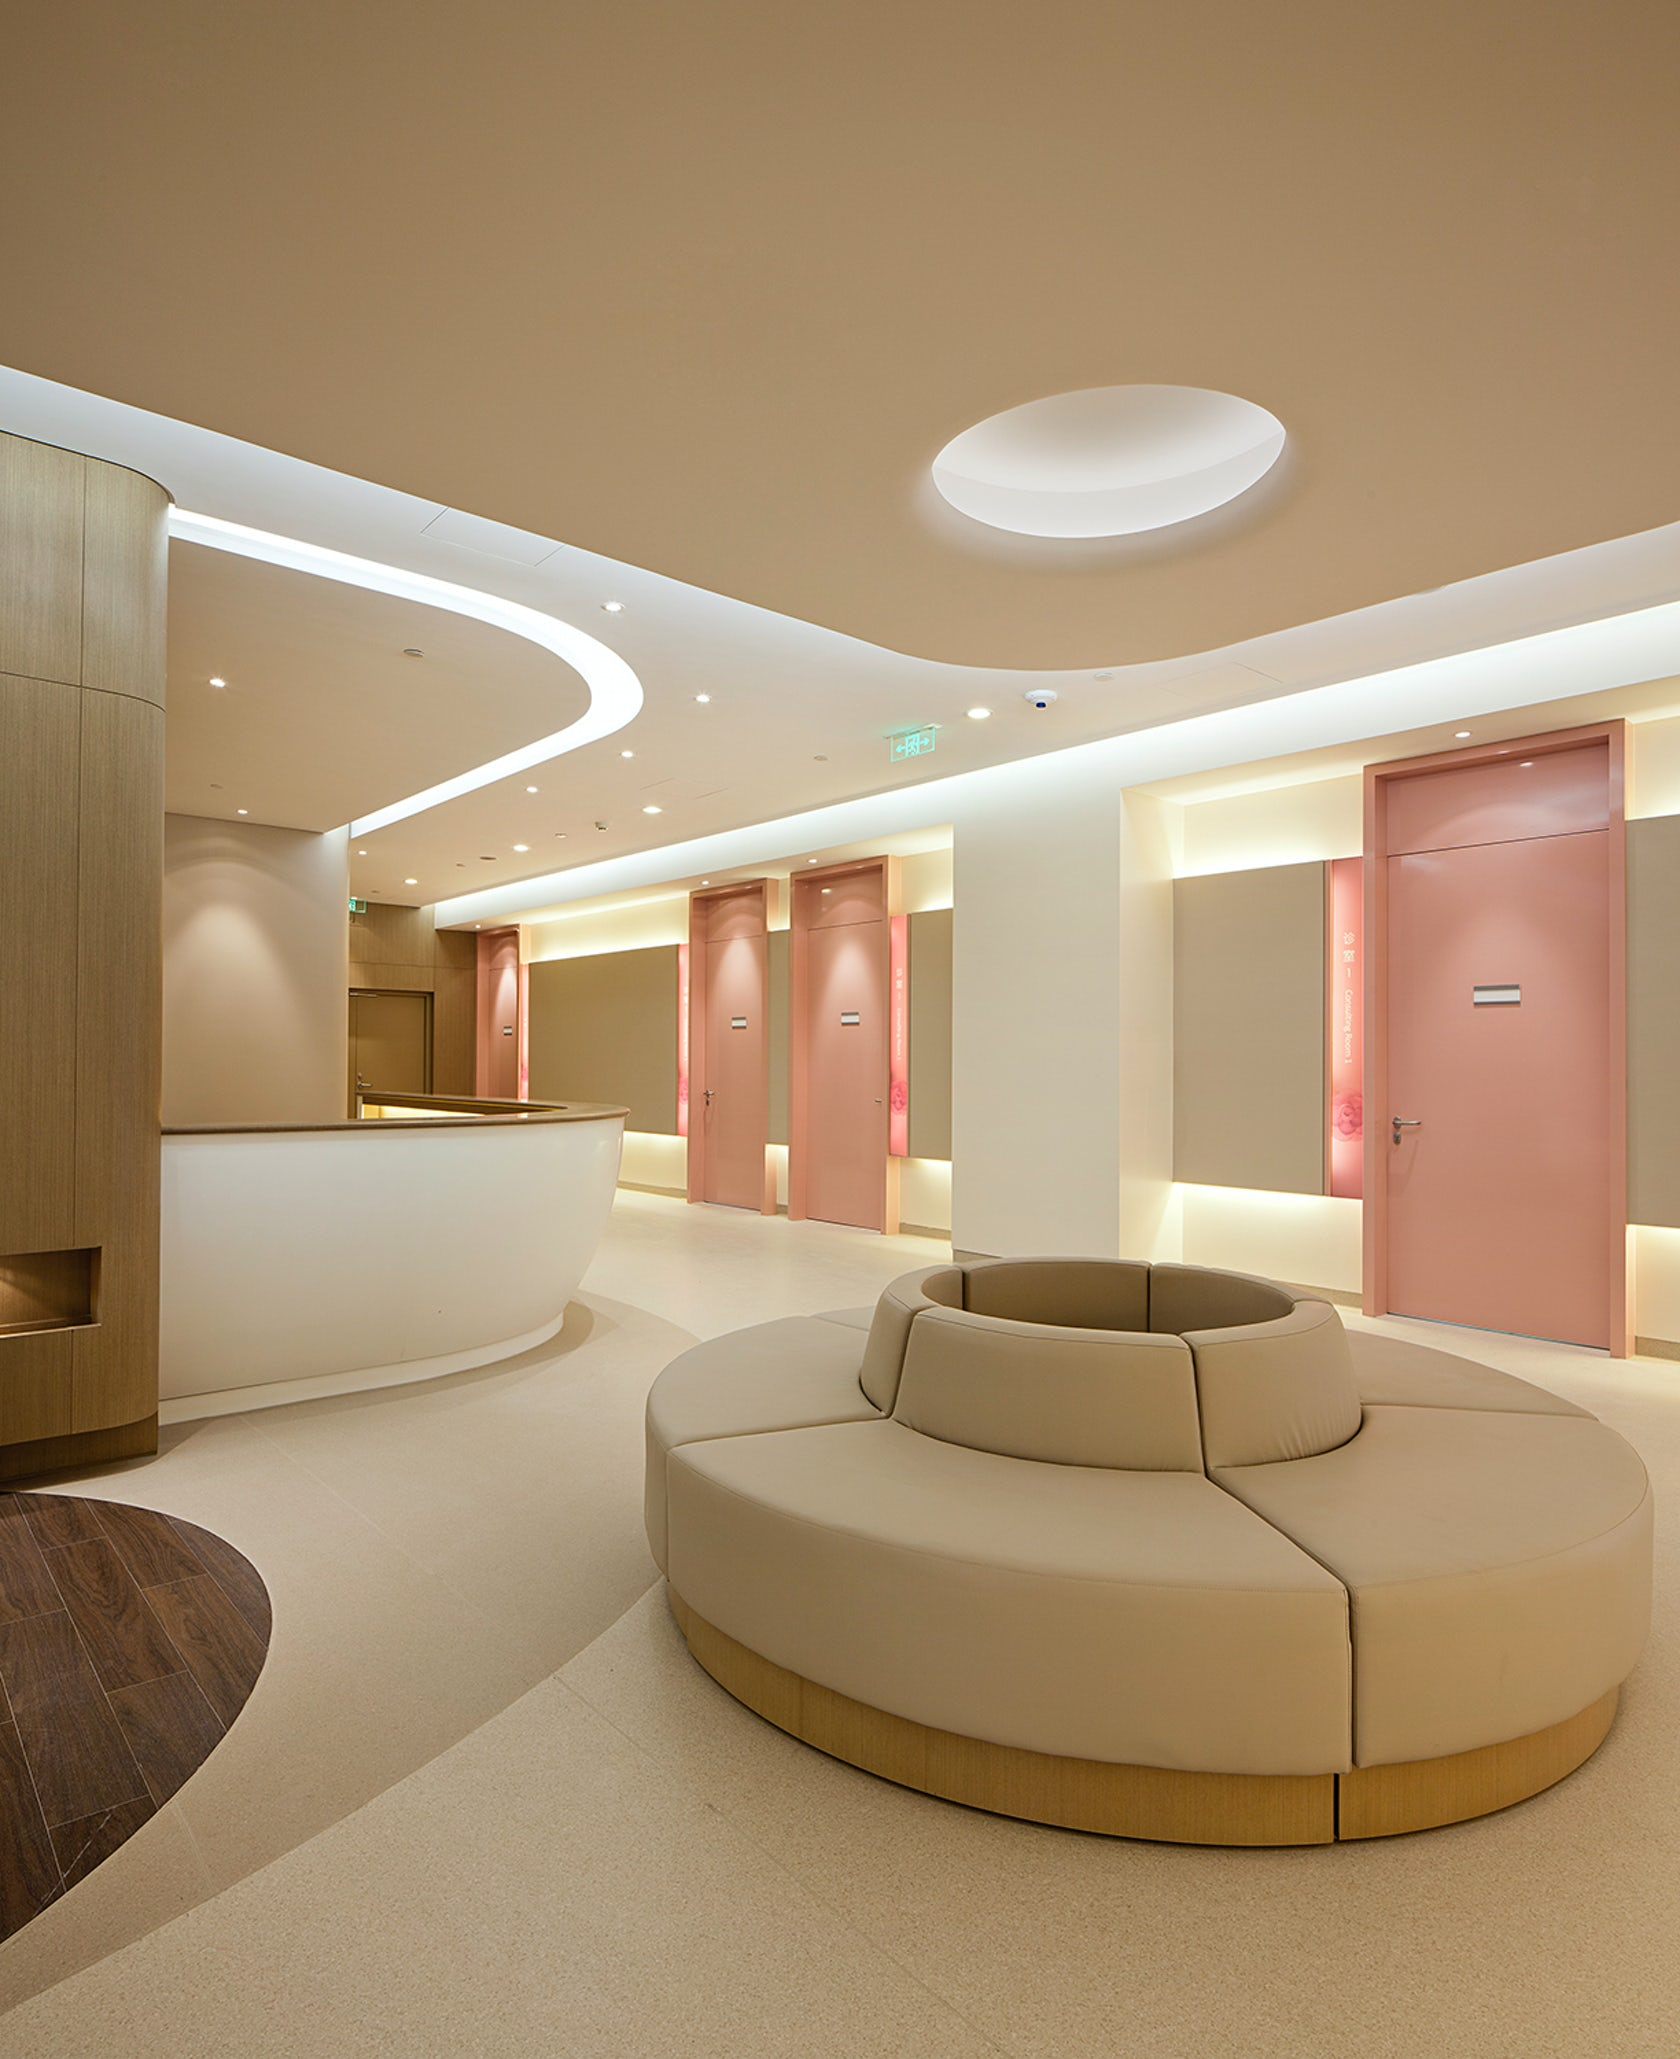 Latest Interiors Porcelain Skin: American-Sino Hospital, Audong Clinic